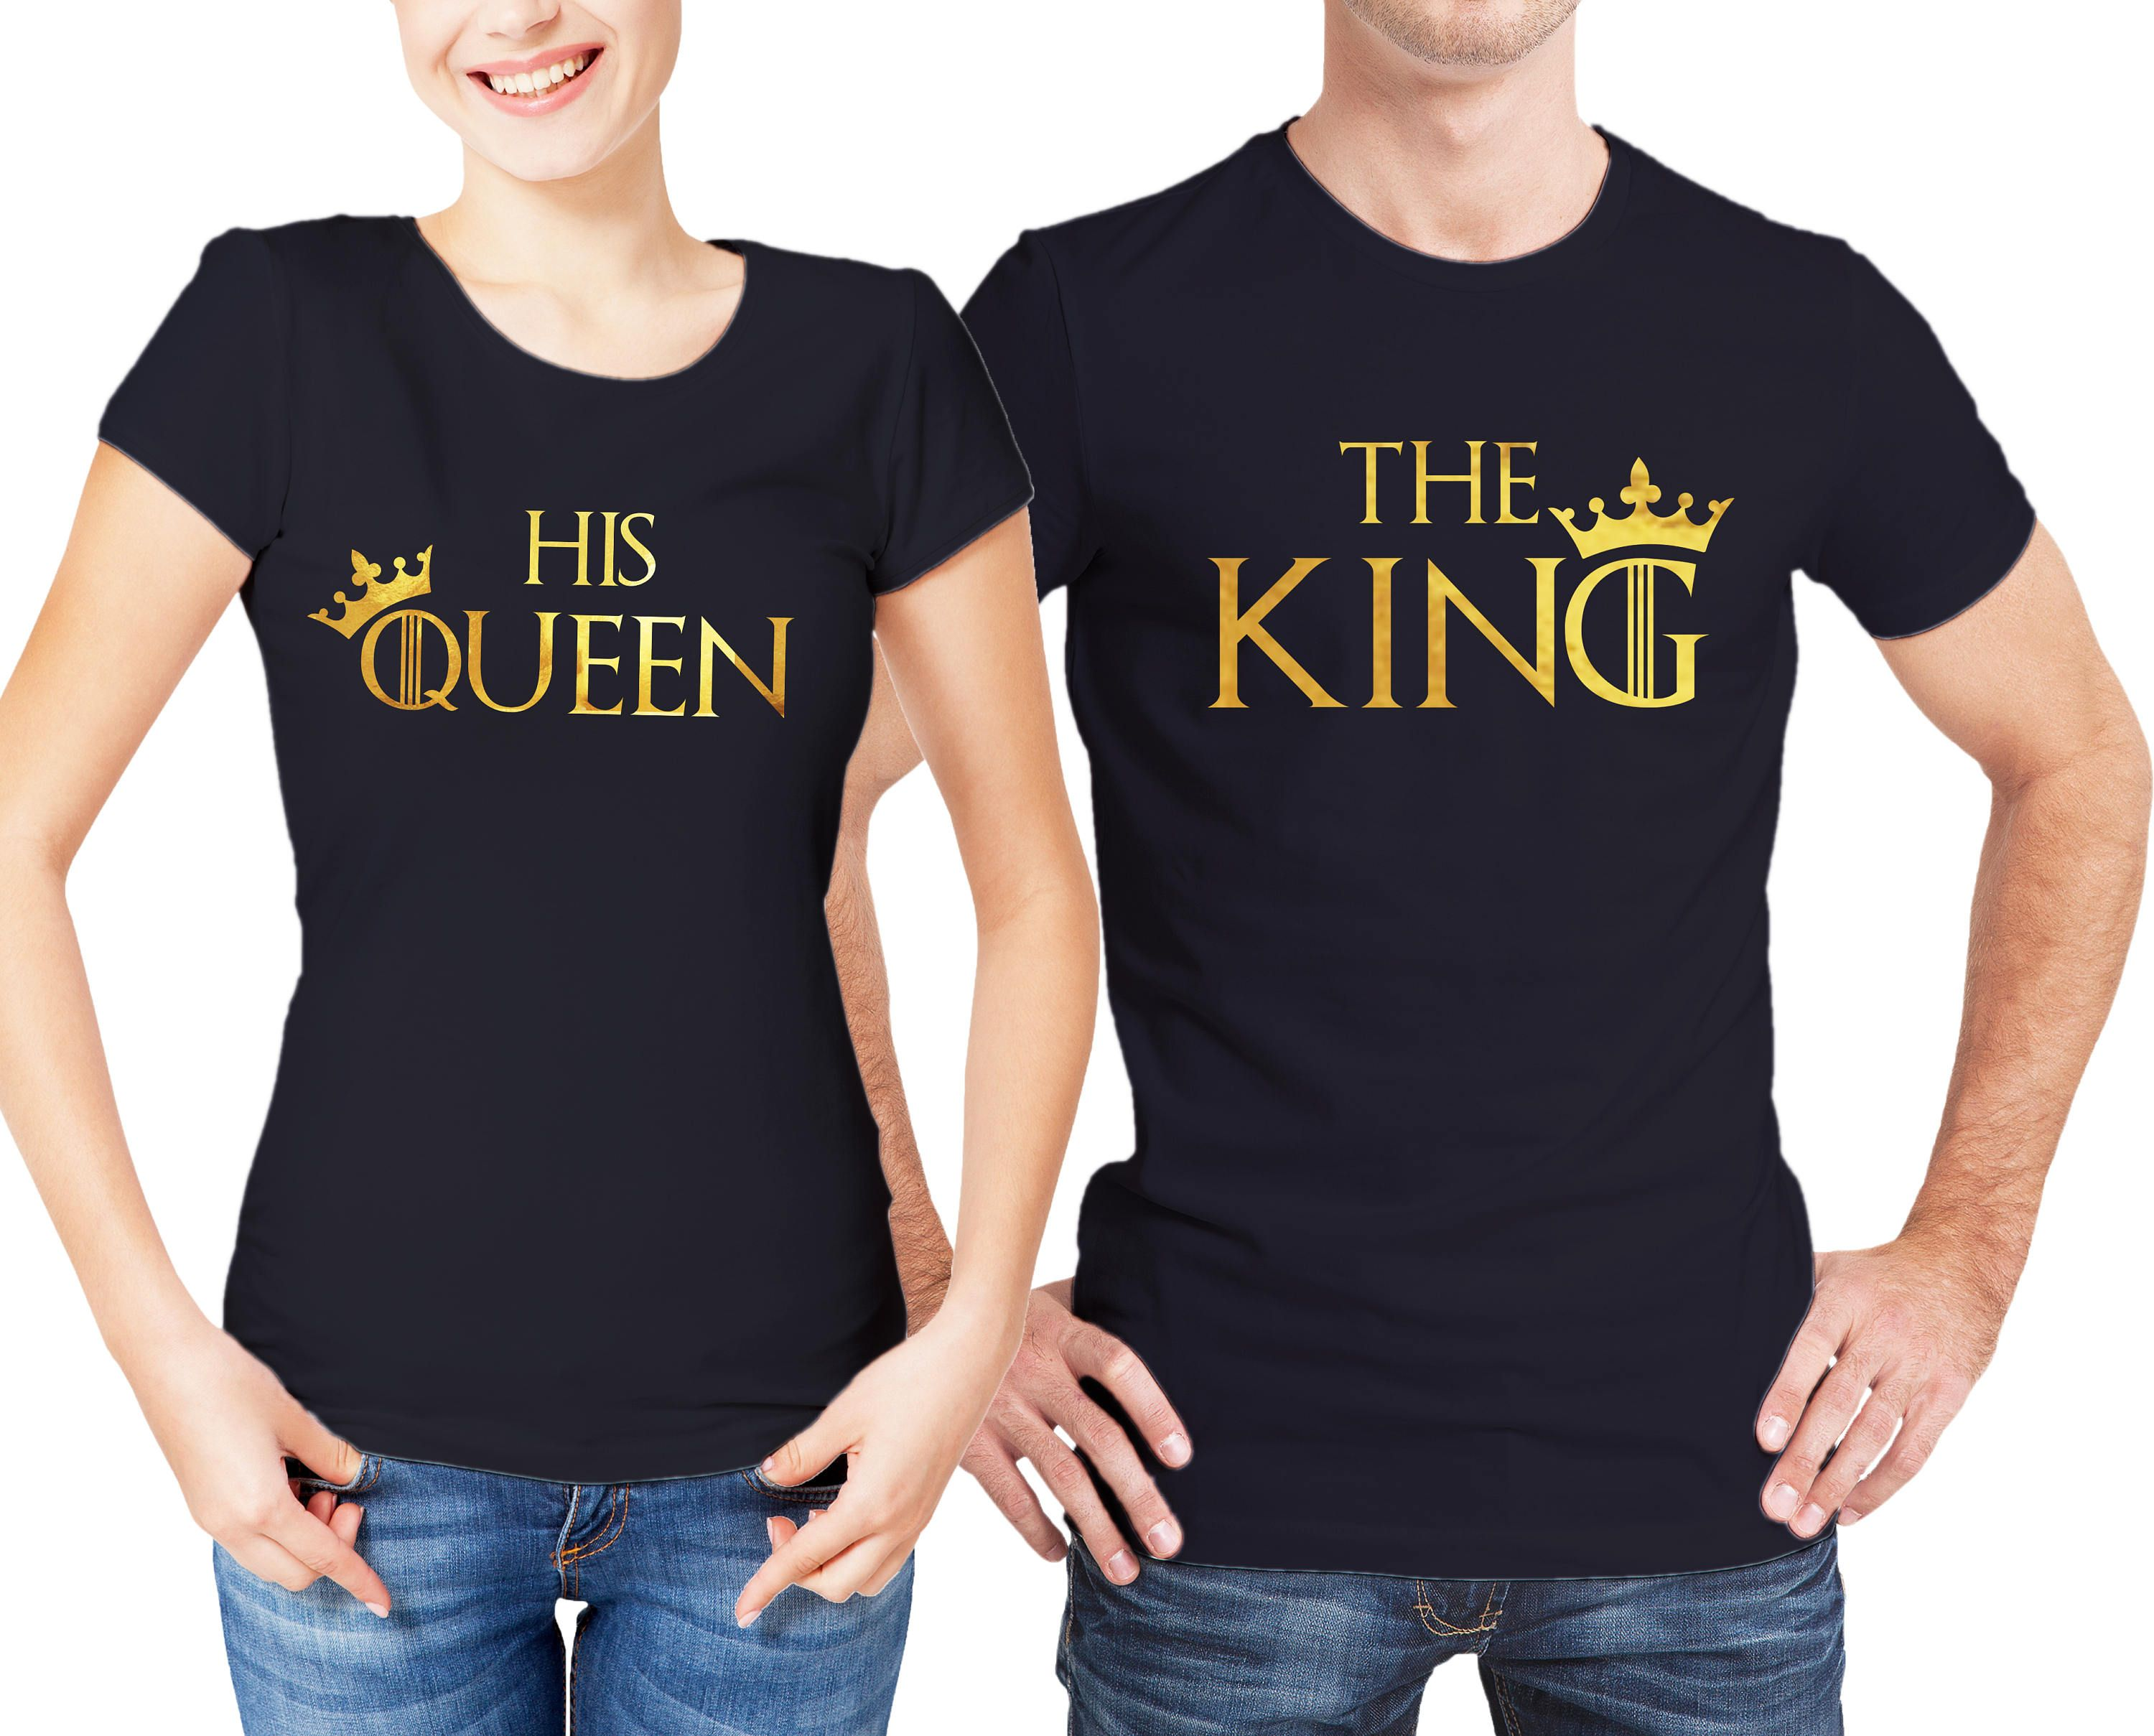 King and His Queen Thrones inspired His and Her Couples black t-shirts set